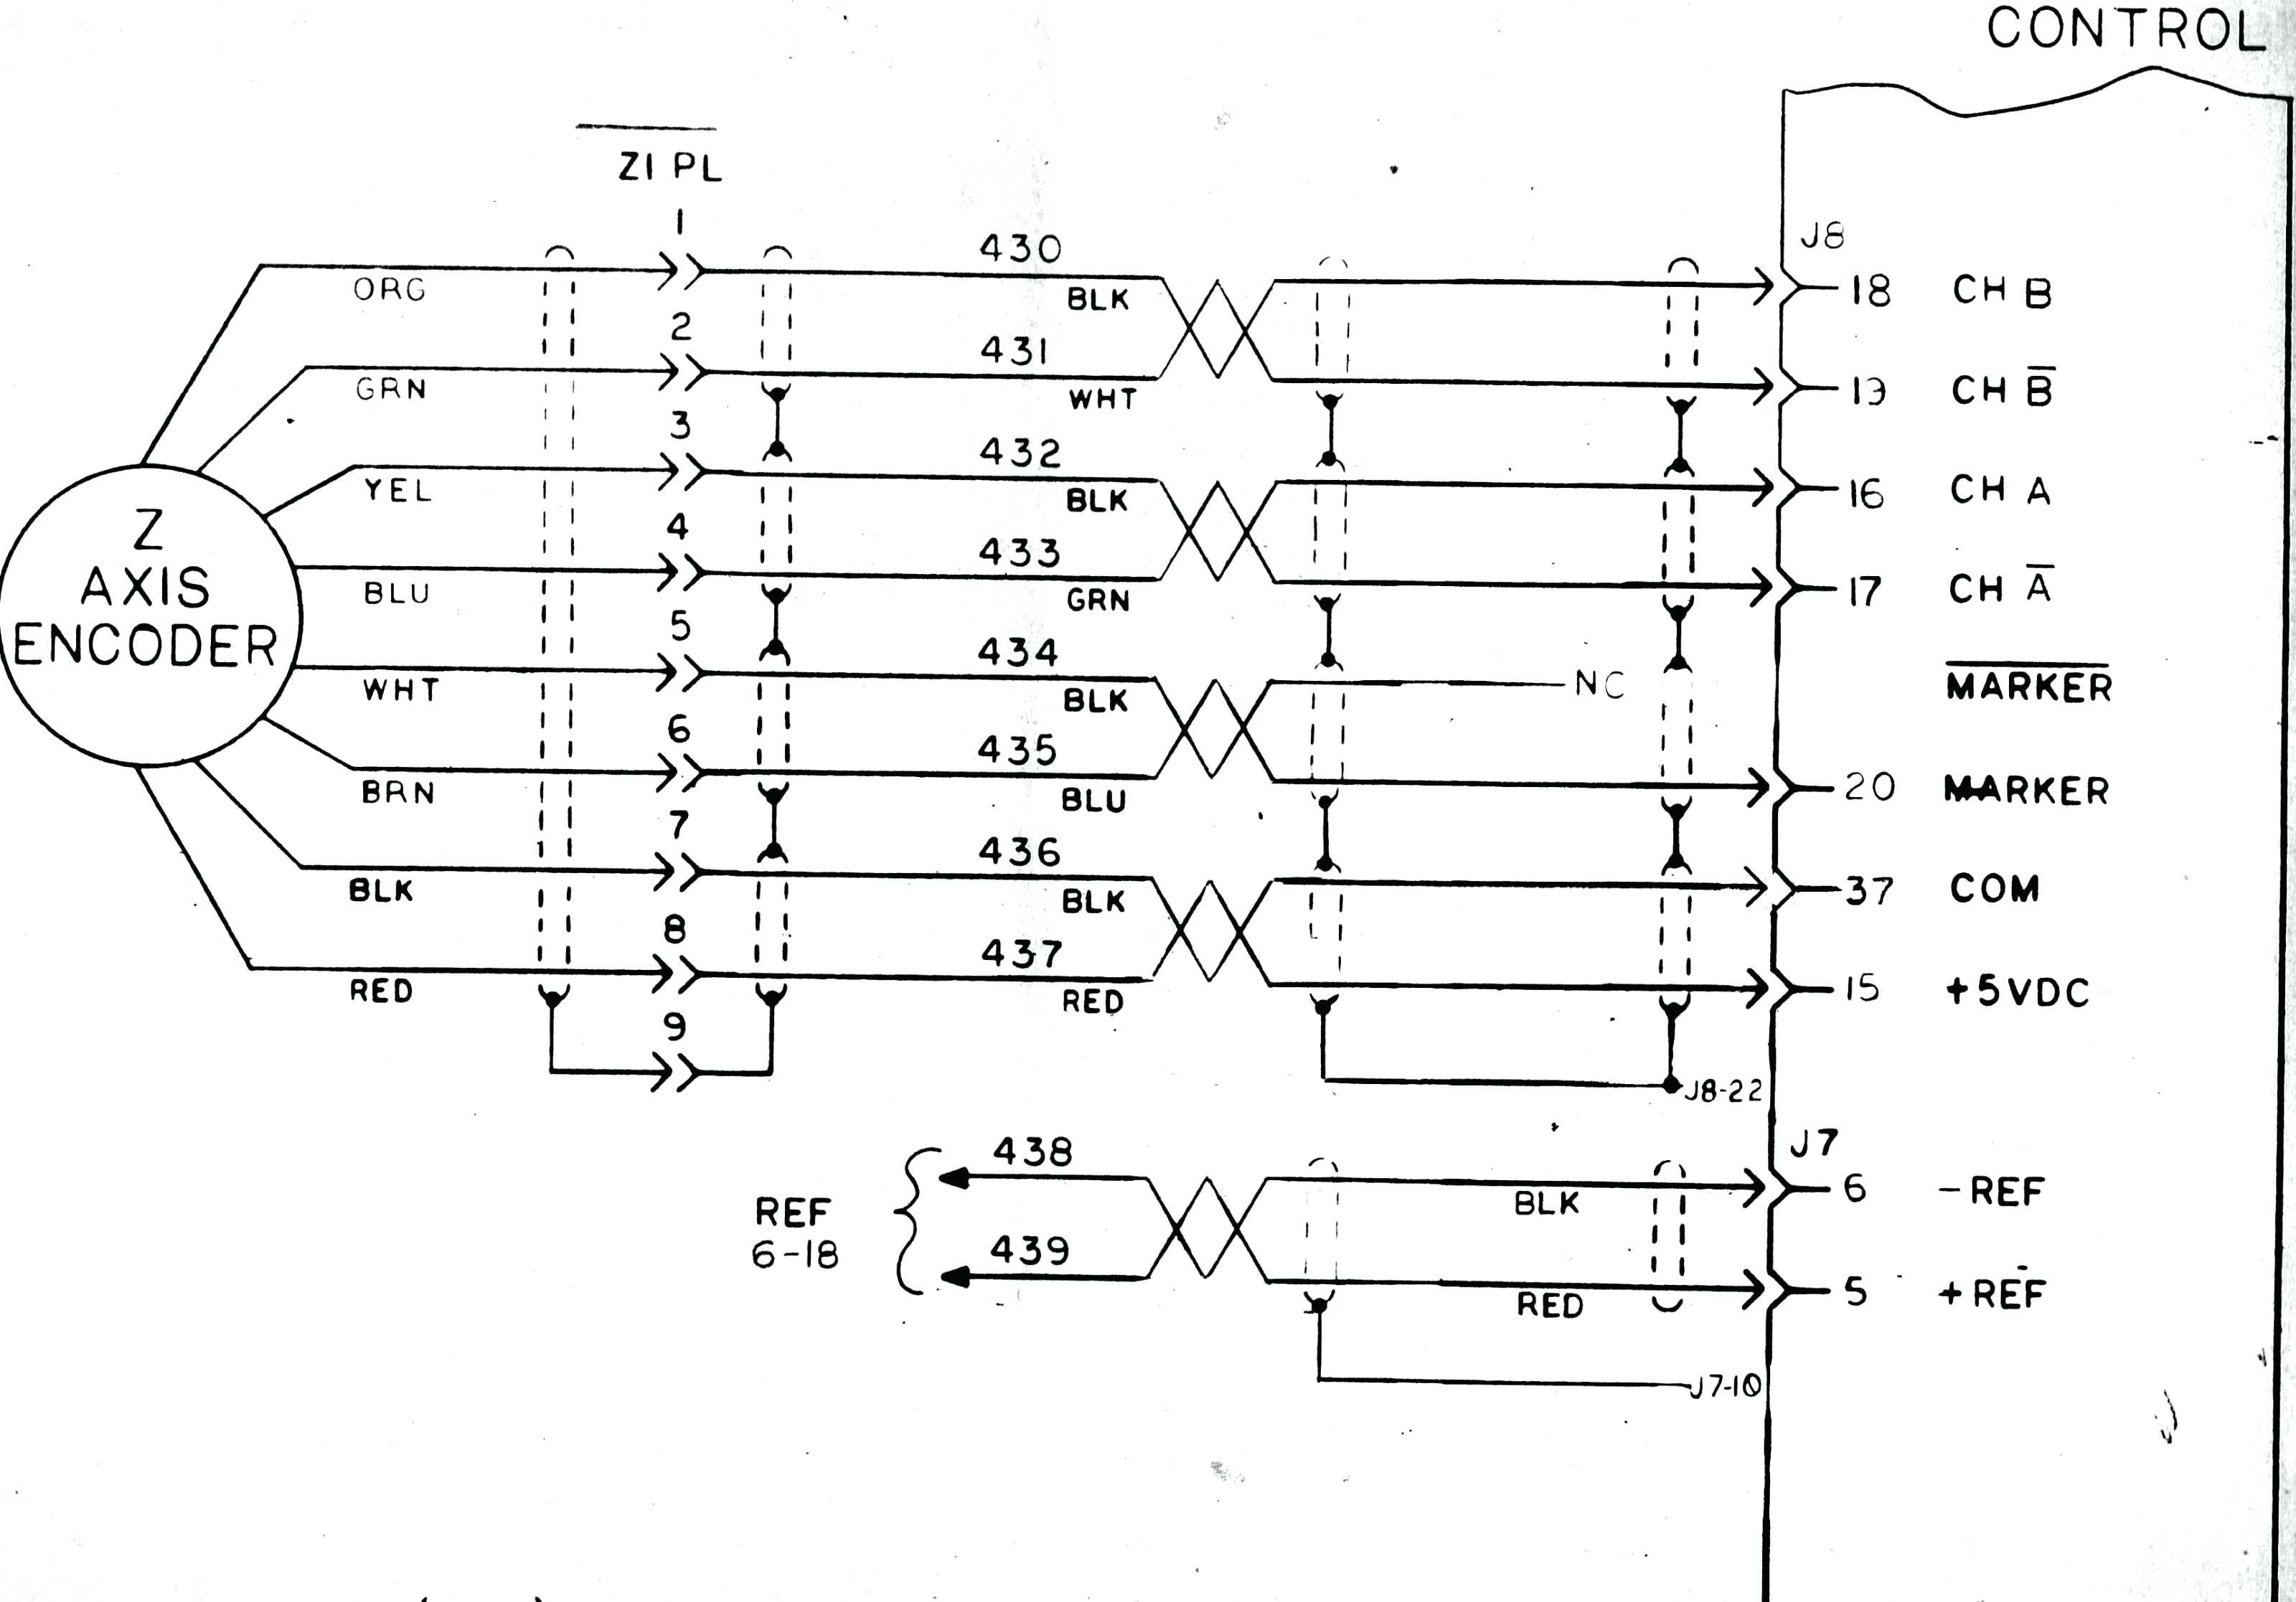 wiring diagram for an encoder